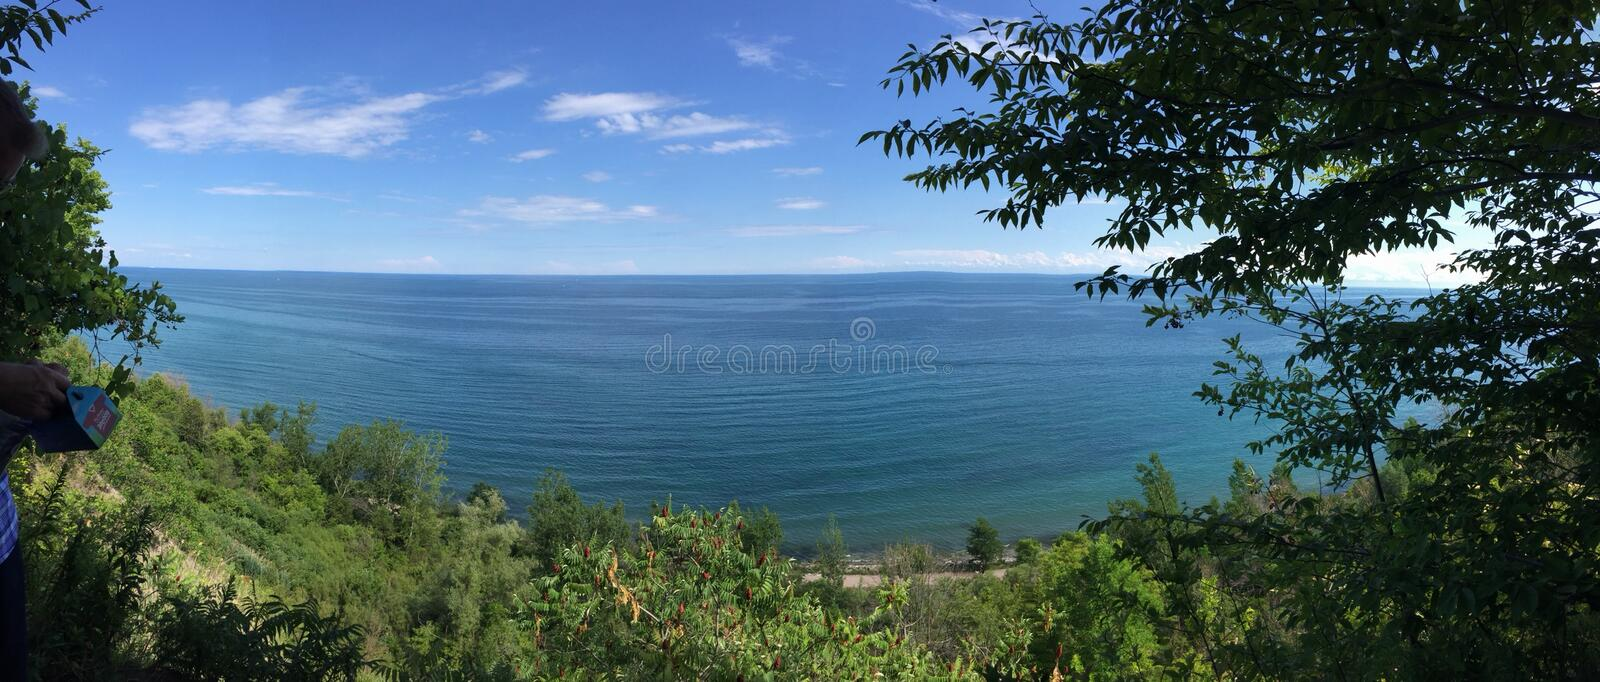 bluffs images stock